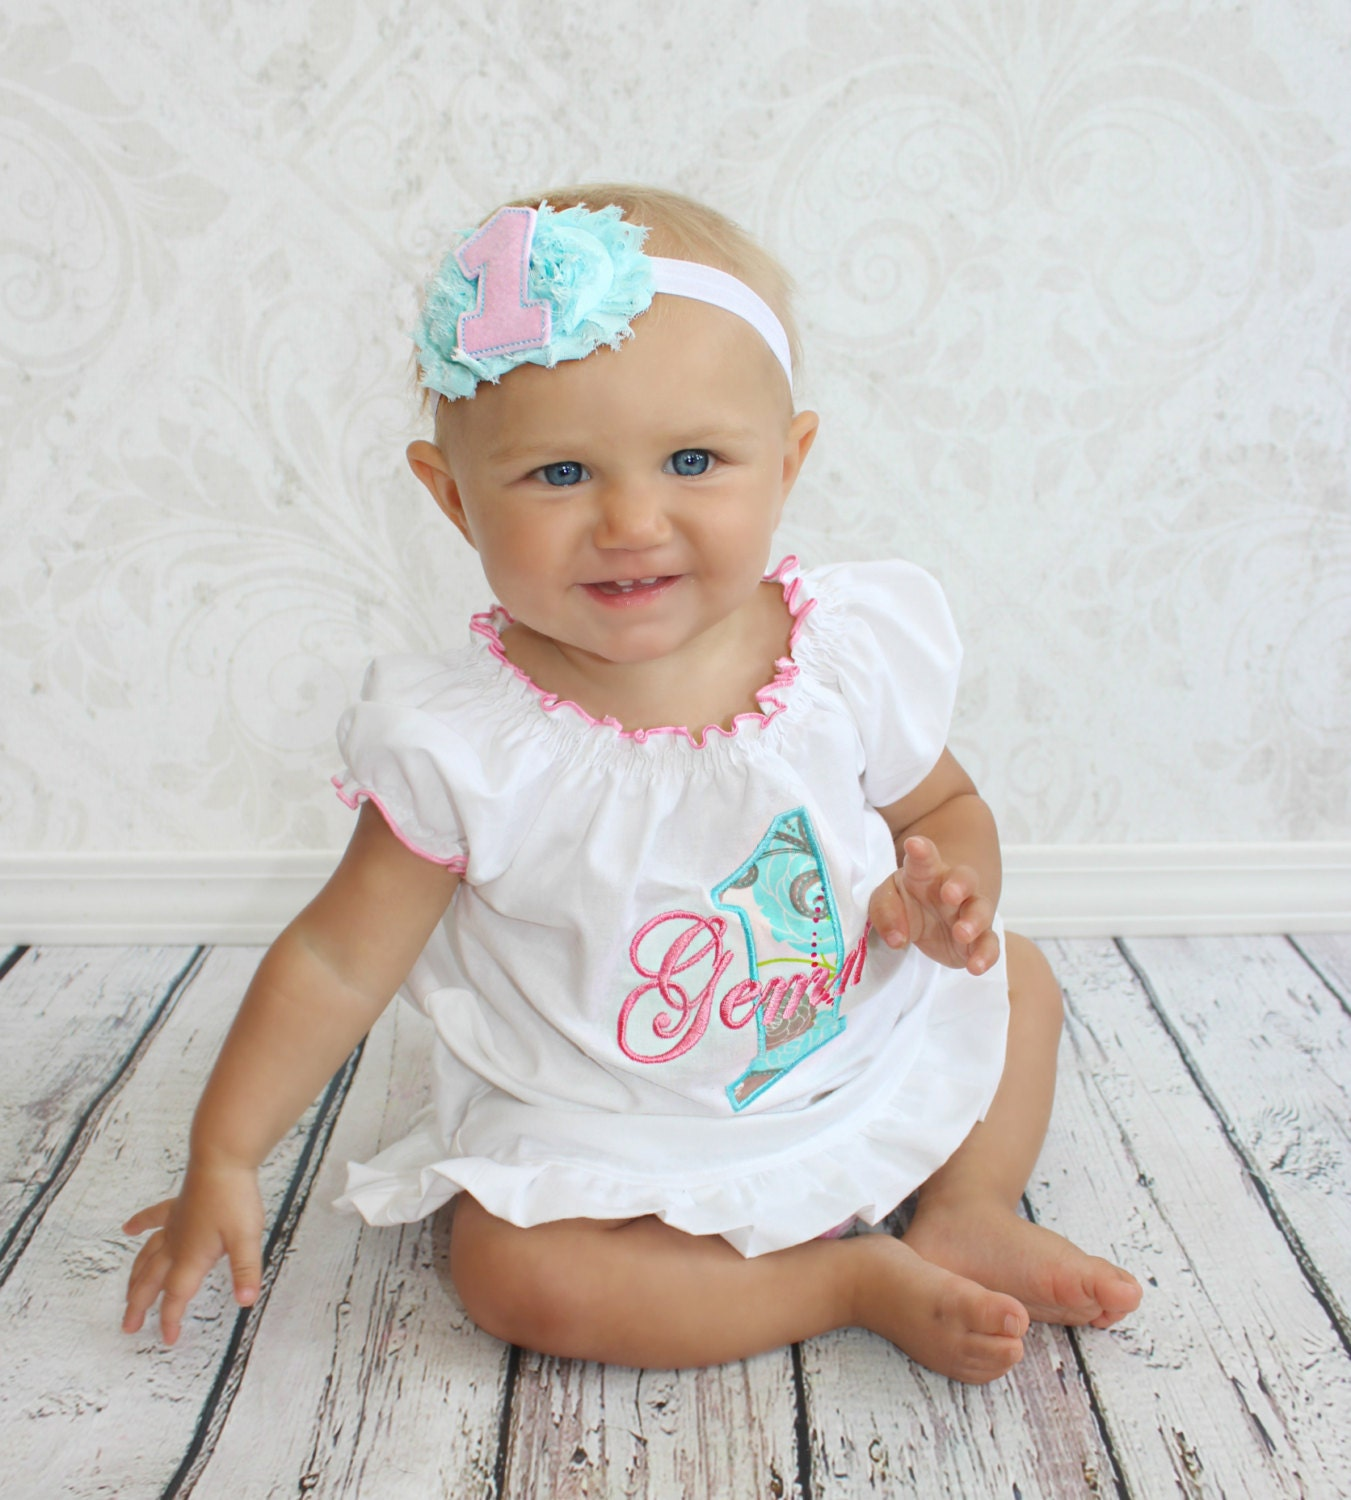 Girl Birthday Outfit, 1st Birthday Outfit, Baby Girl Clothing, Birthday Shirt Girl, Birthday Outfit 1, Birthday shirt 1,Baby Girl Clothing PrettyGirlSwagCo. 5 out of 5 stars () $ Eligible orders ship free Get fresh Etsy trends and unique gift ideas delivered right to your inbox. Subscribe.